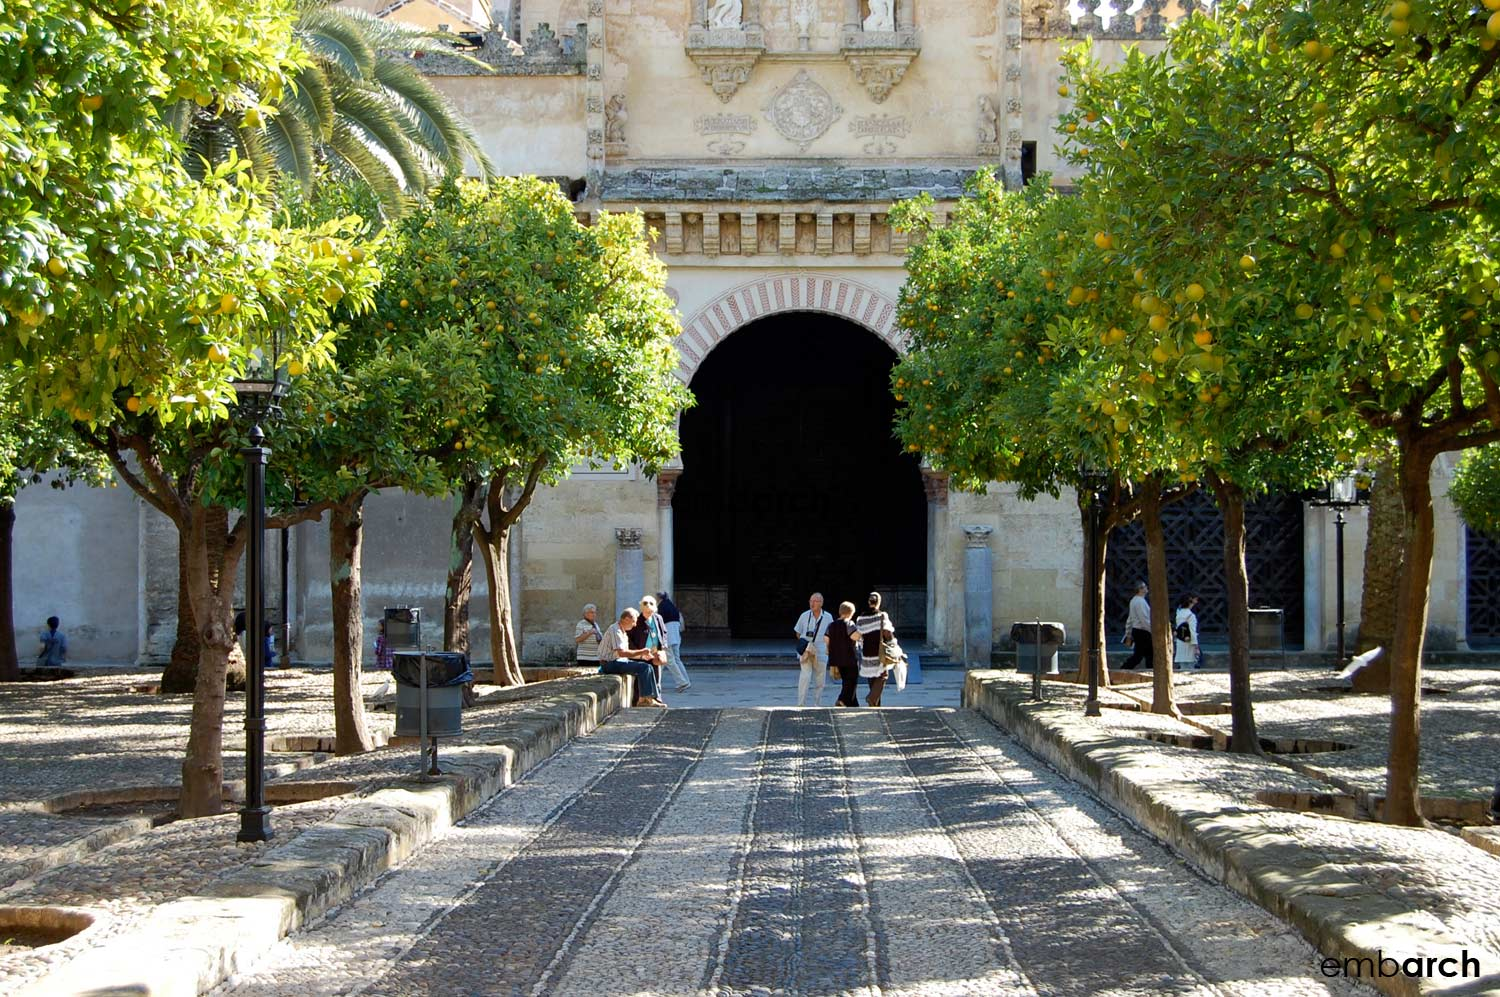 The Mosque-Cathedral of Cordoba - exterior